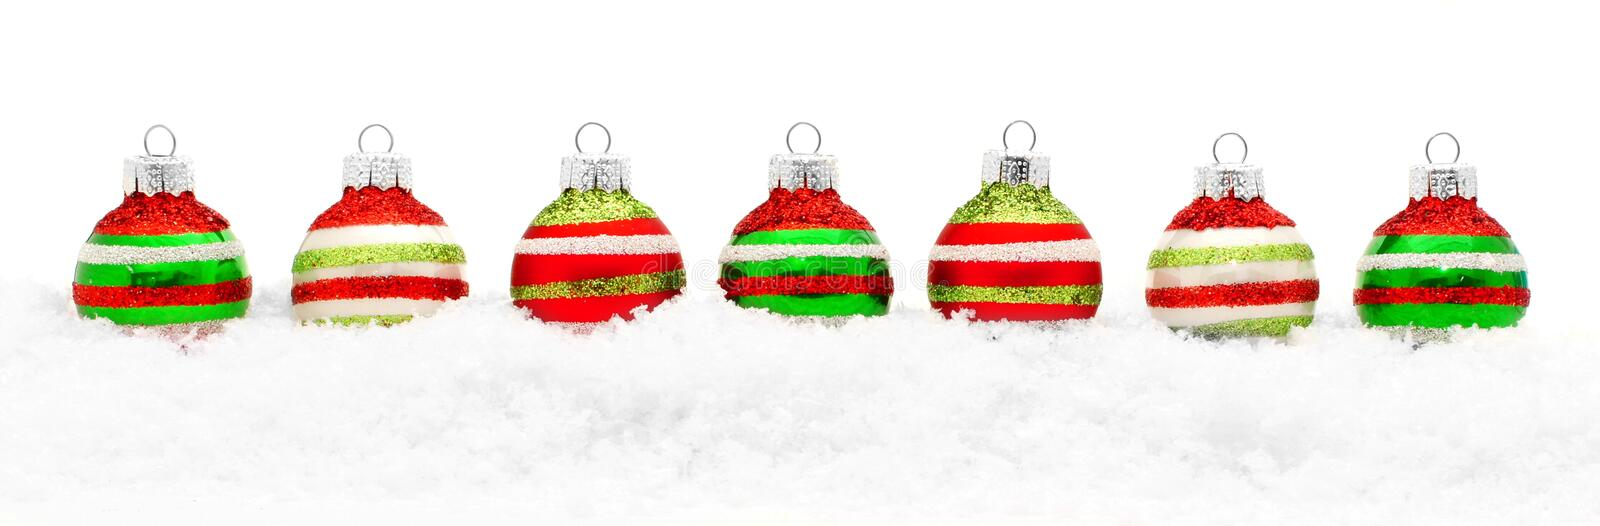 Download Christmas baubles stock photo. Image of decoration, colorful - 35103724